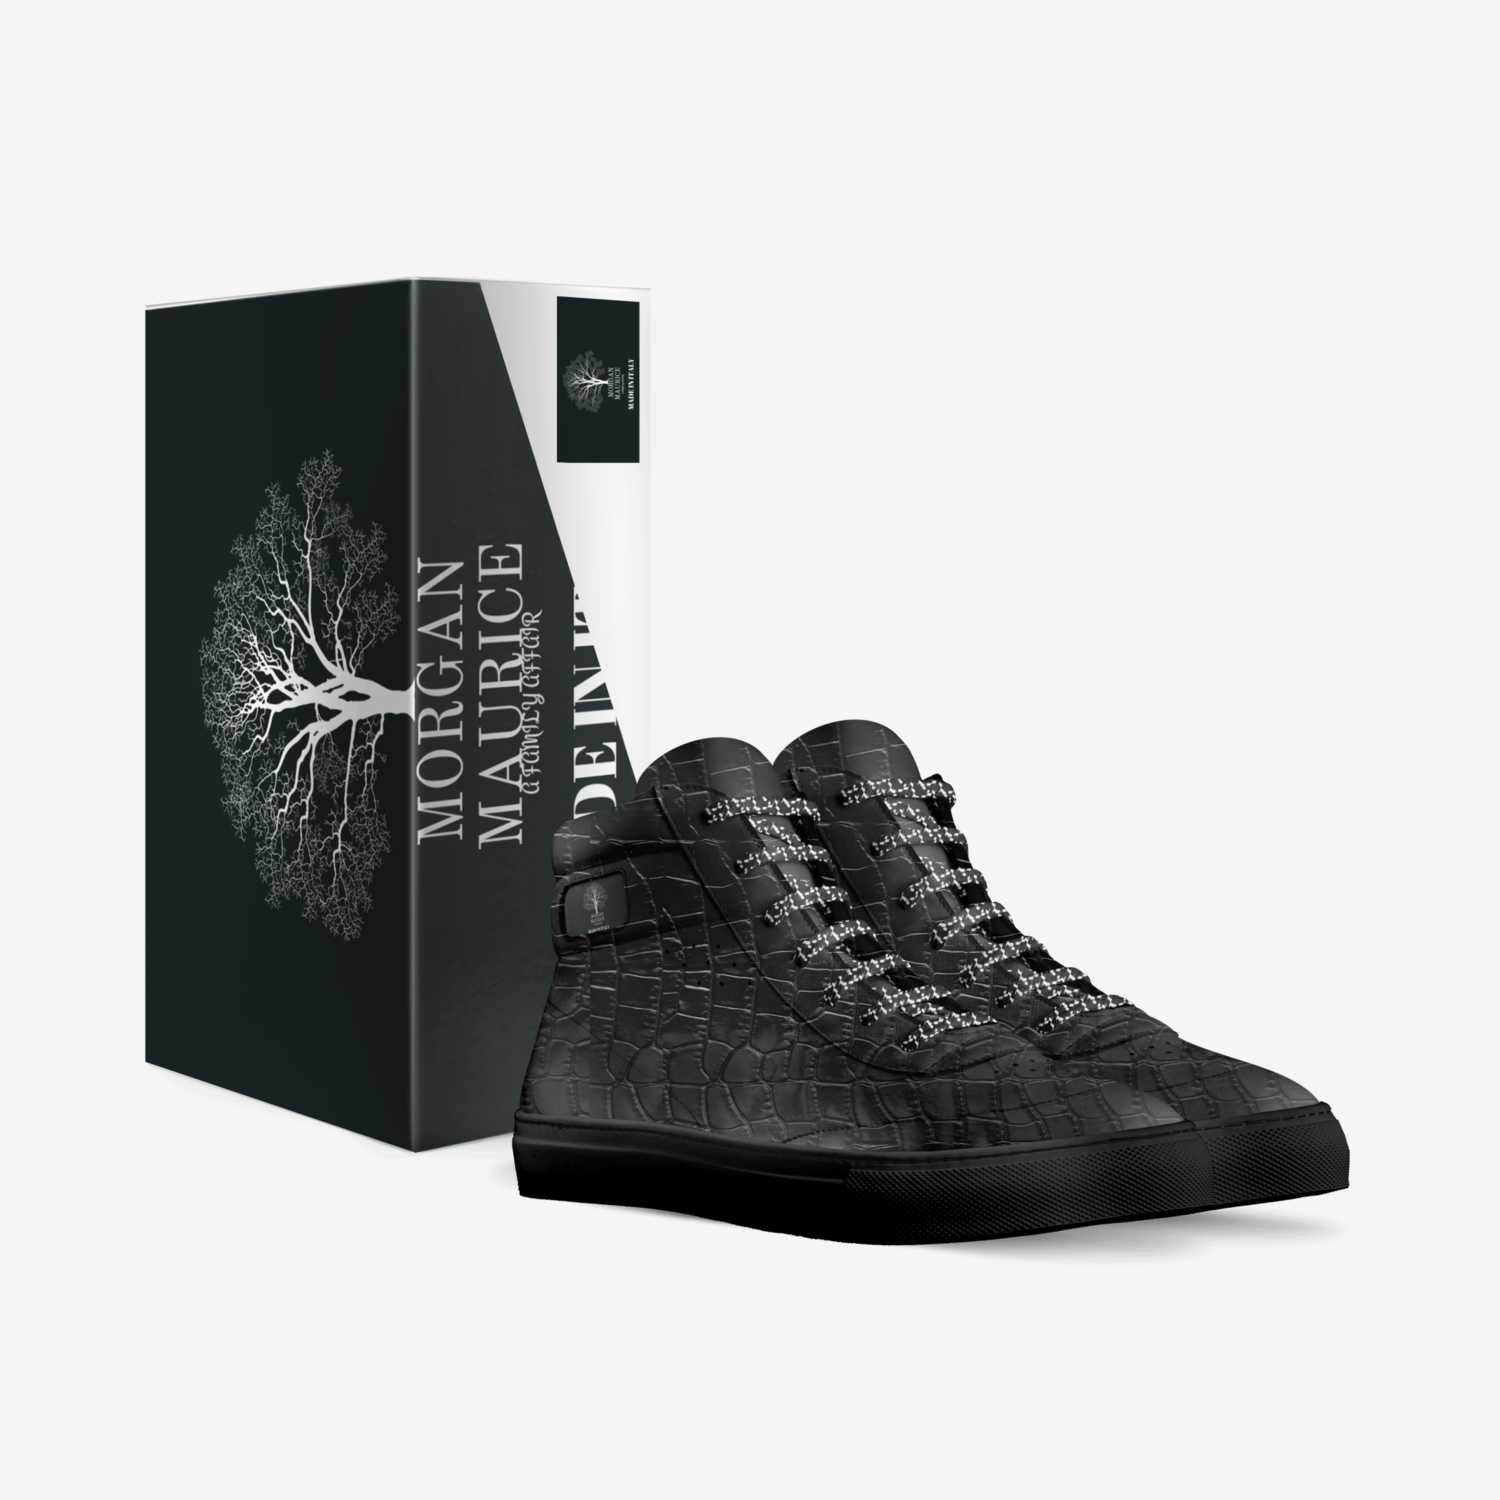 Morgan Maurice  custom made in Italy shoes by Morgan Maurice   Box view